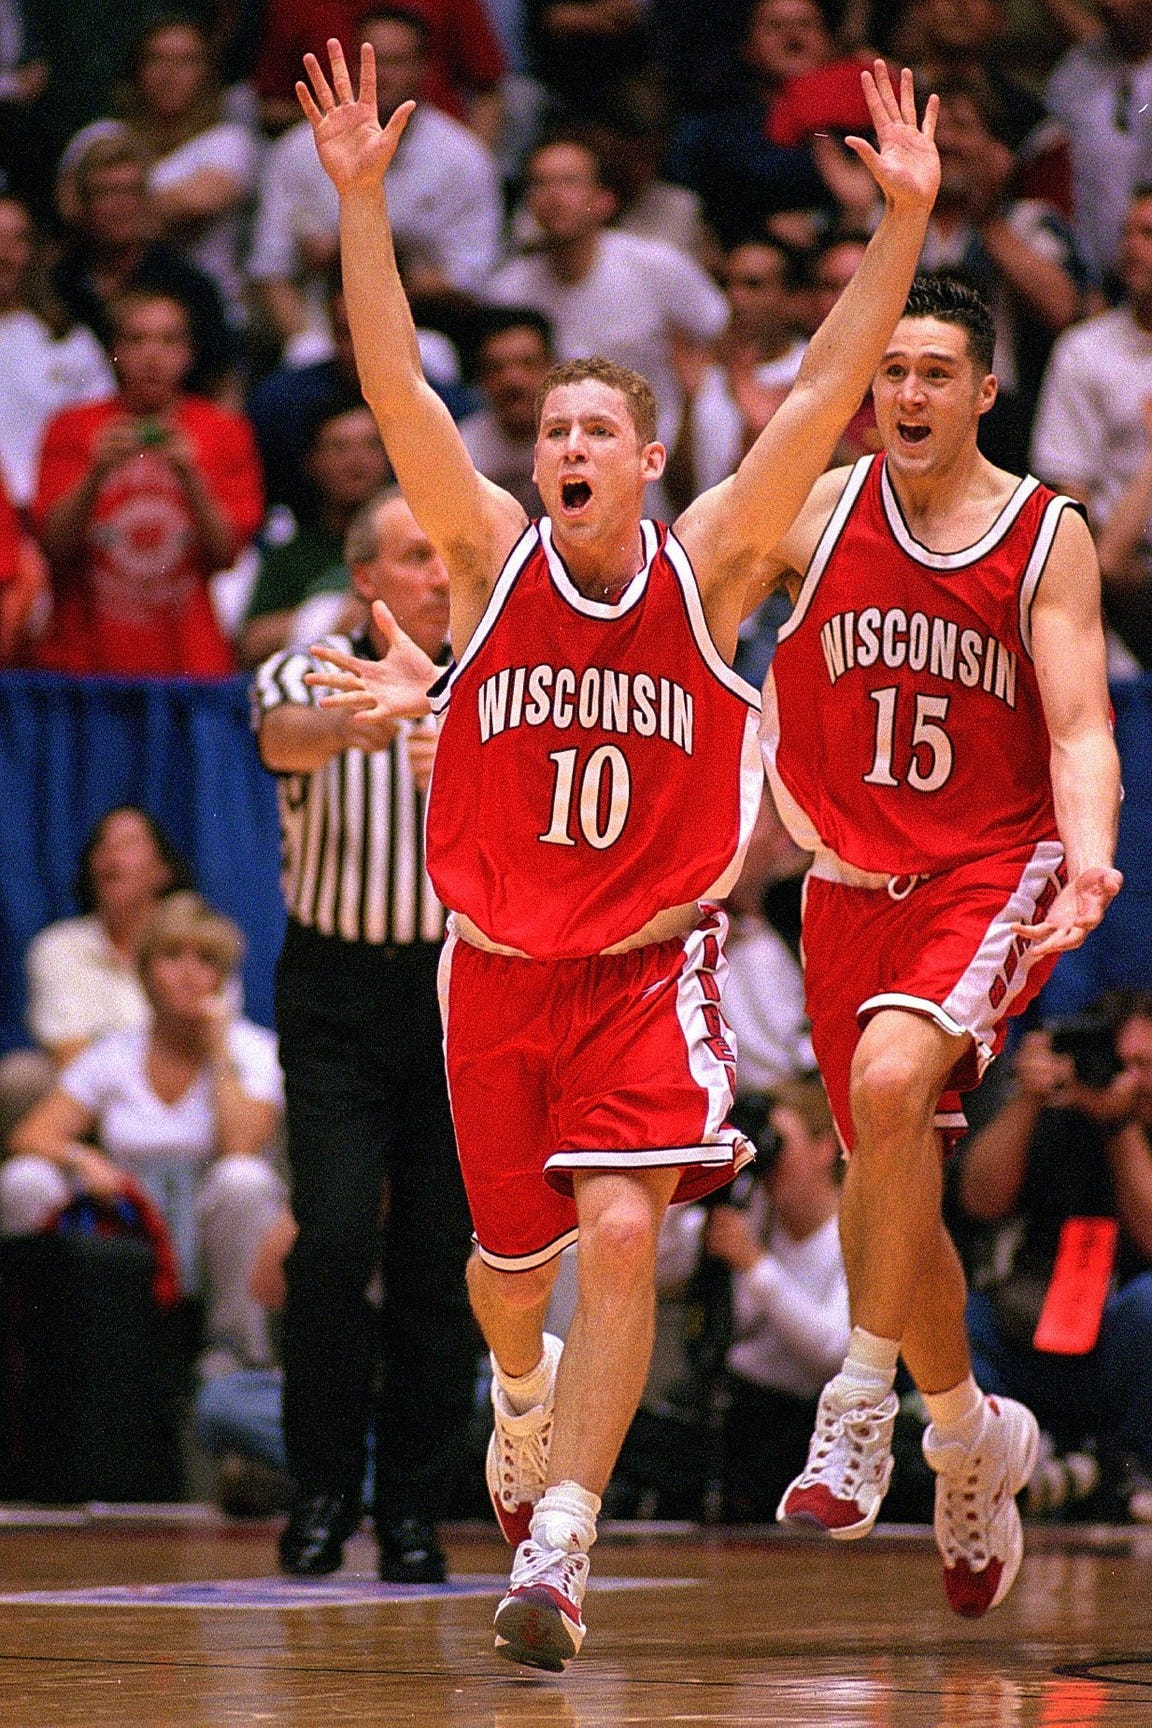 Jon Bryant (#10) and Andy Kowske (#15) celebrate Wisconsin's 64-60 victory over Purdue.